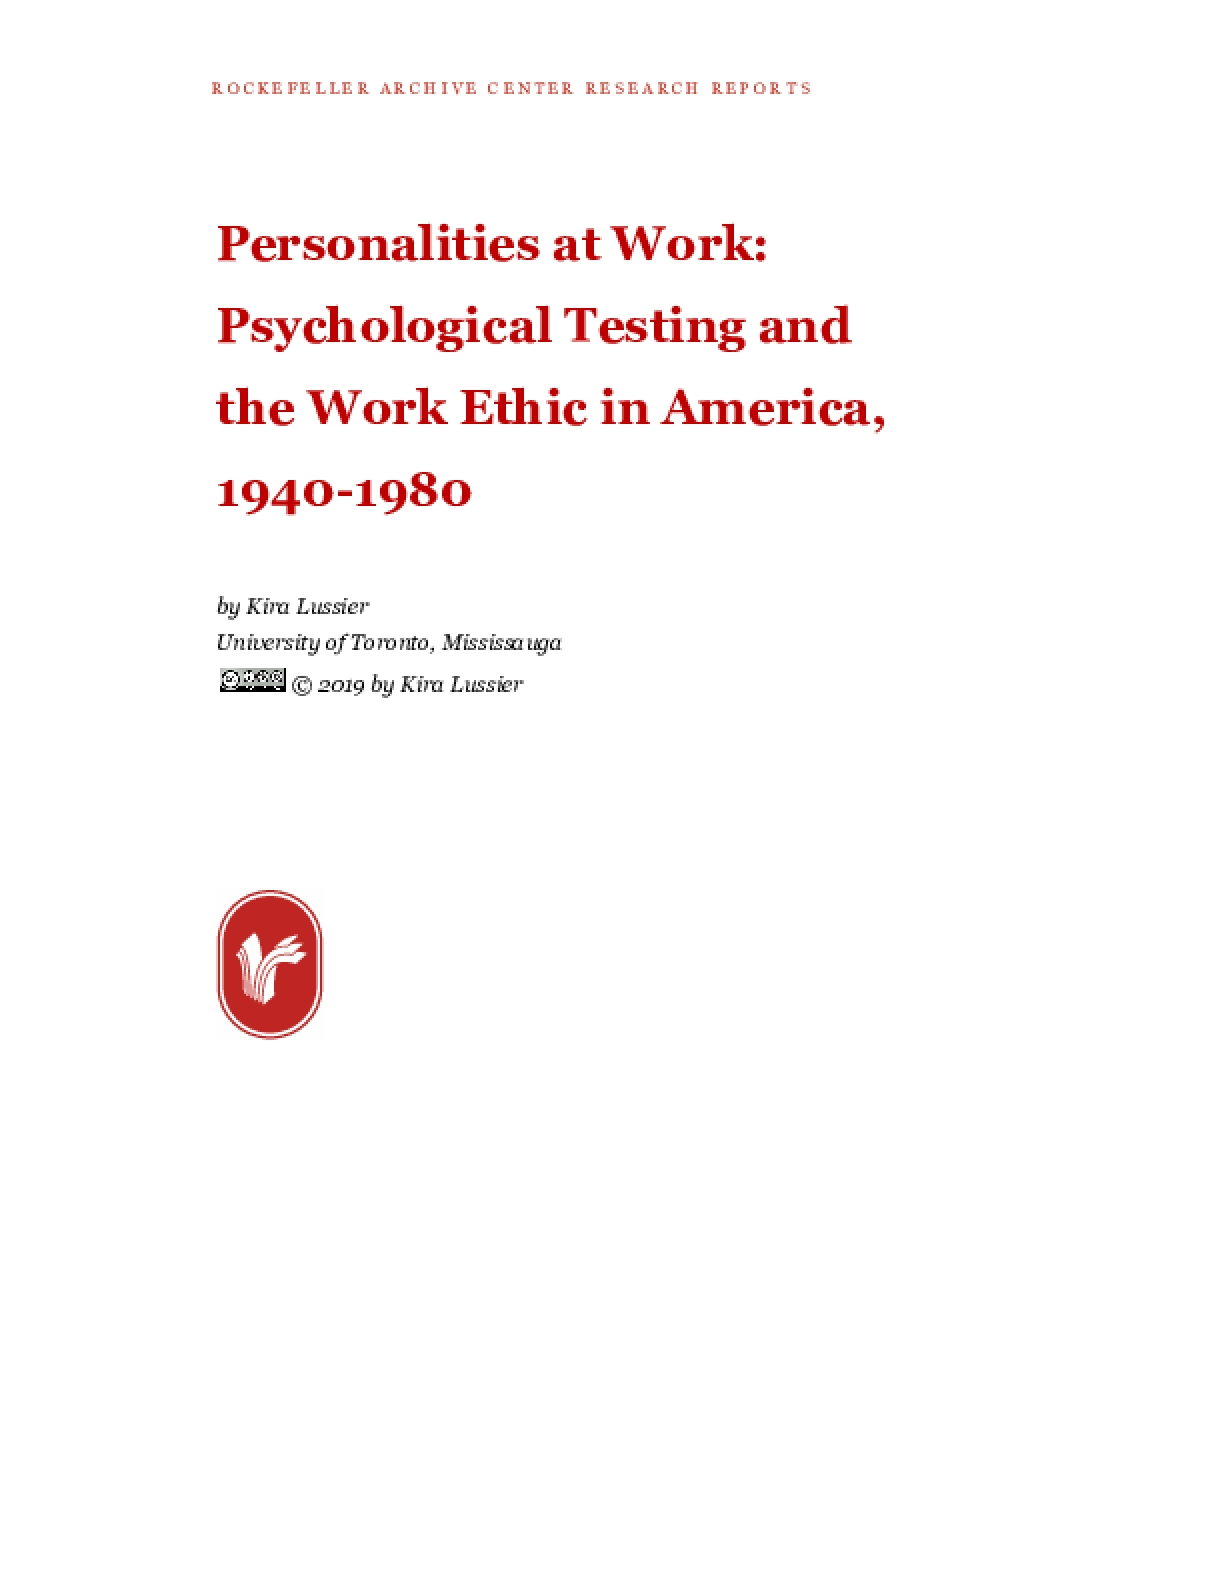 Personalities at Work: Psychological Testing and the Work Ethic in America, 1940-1980